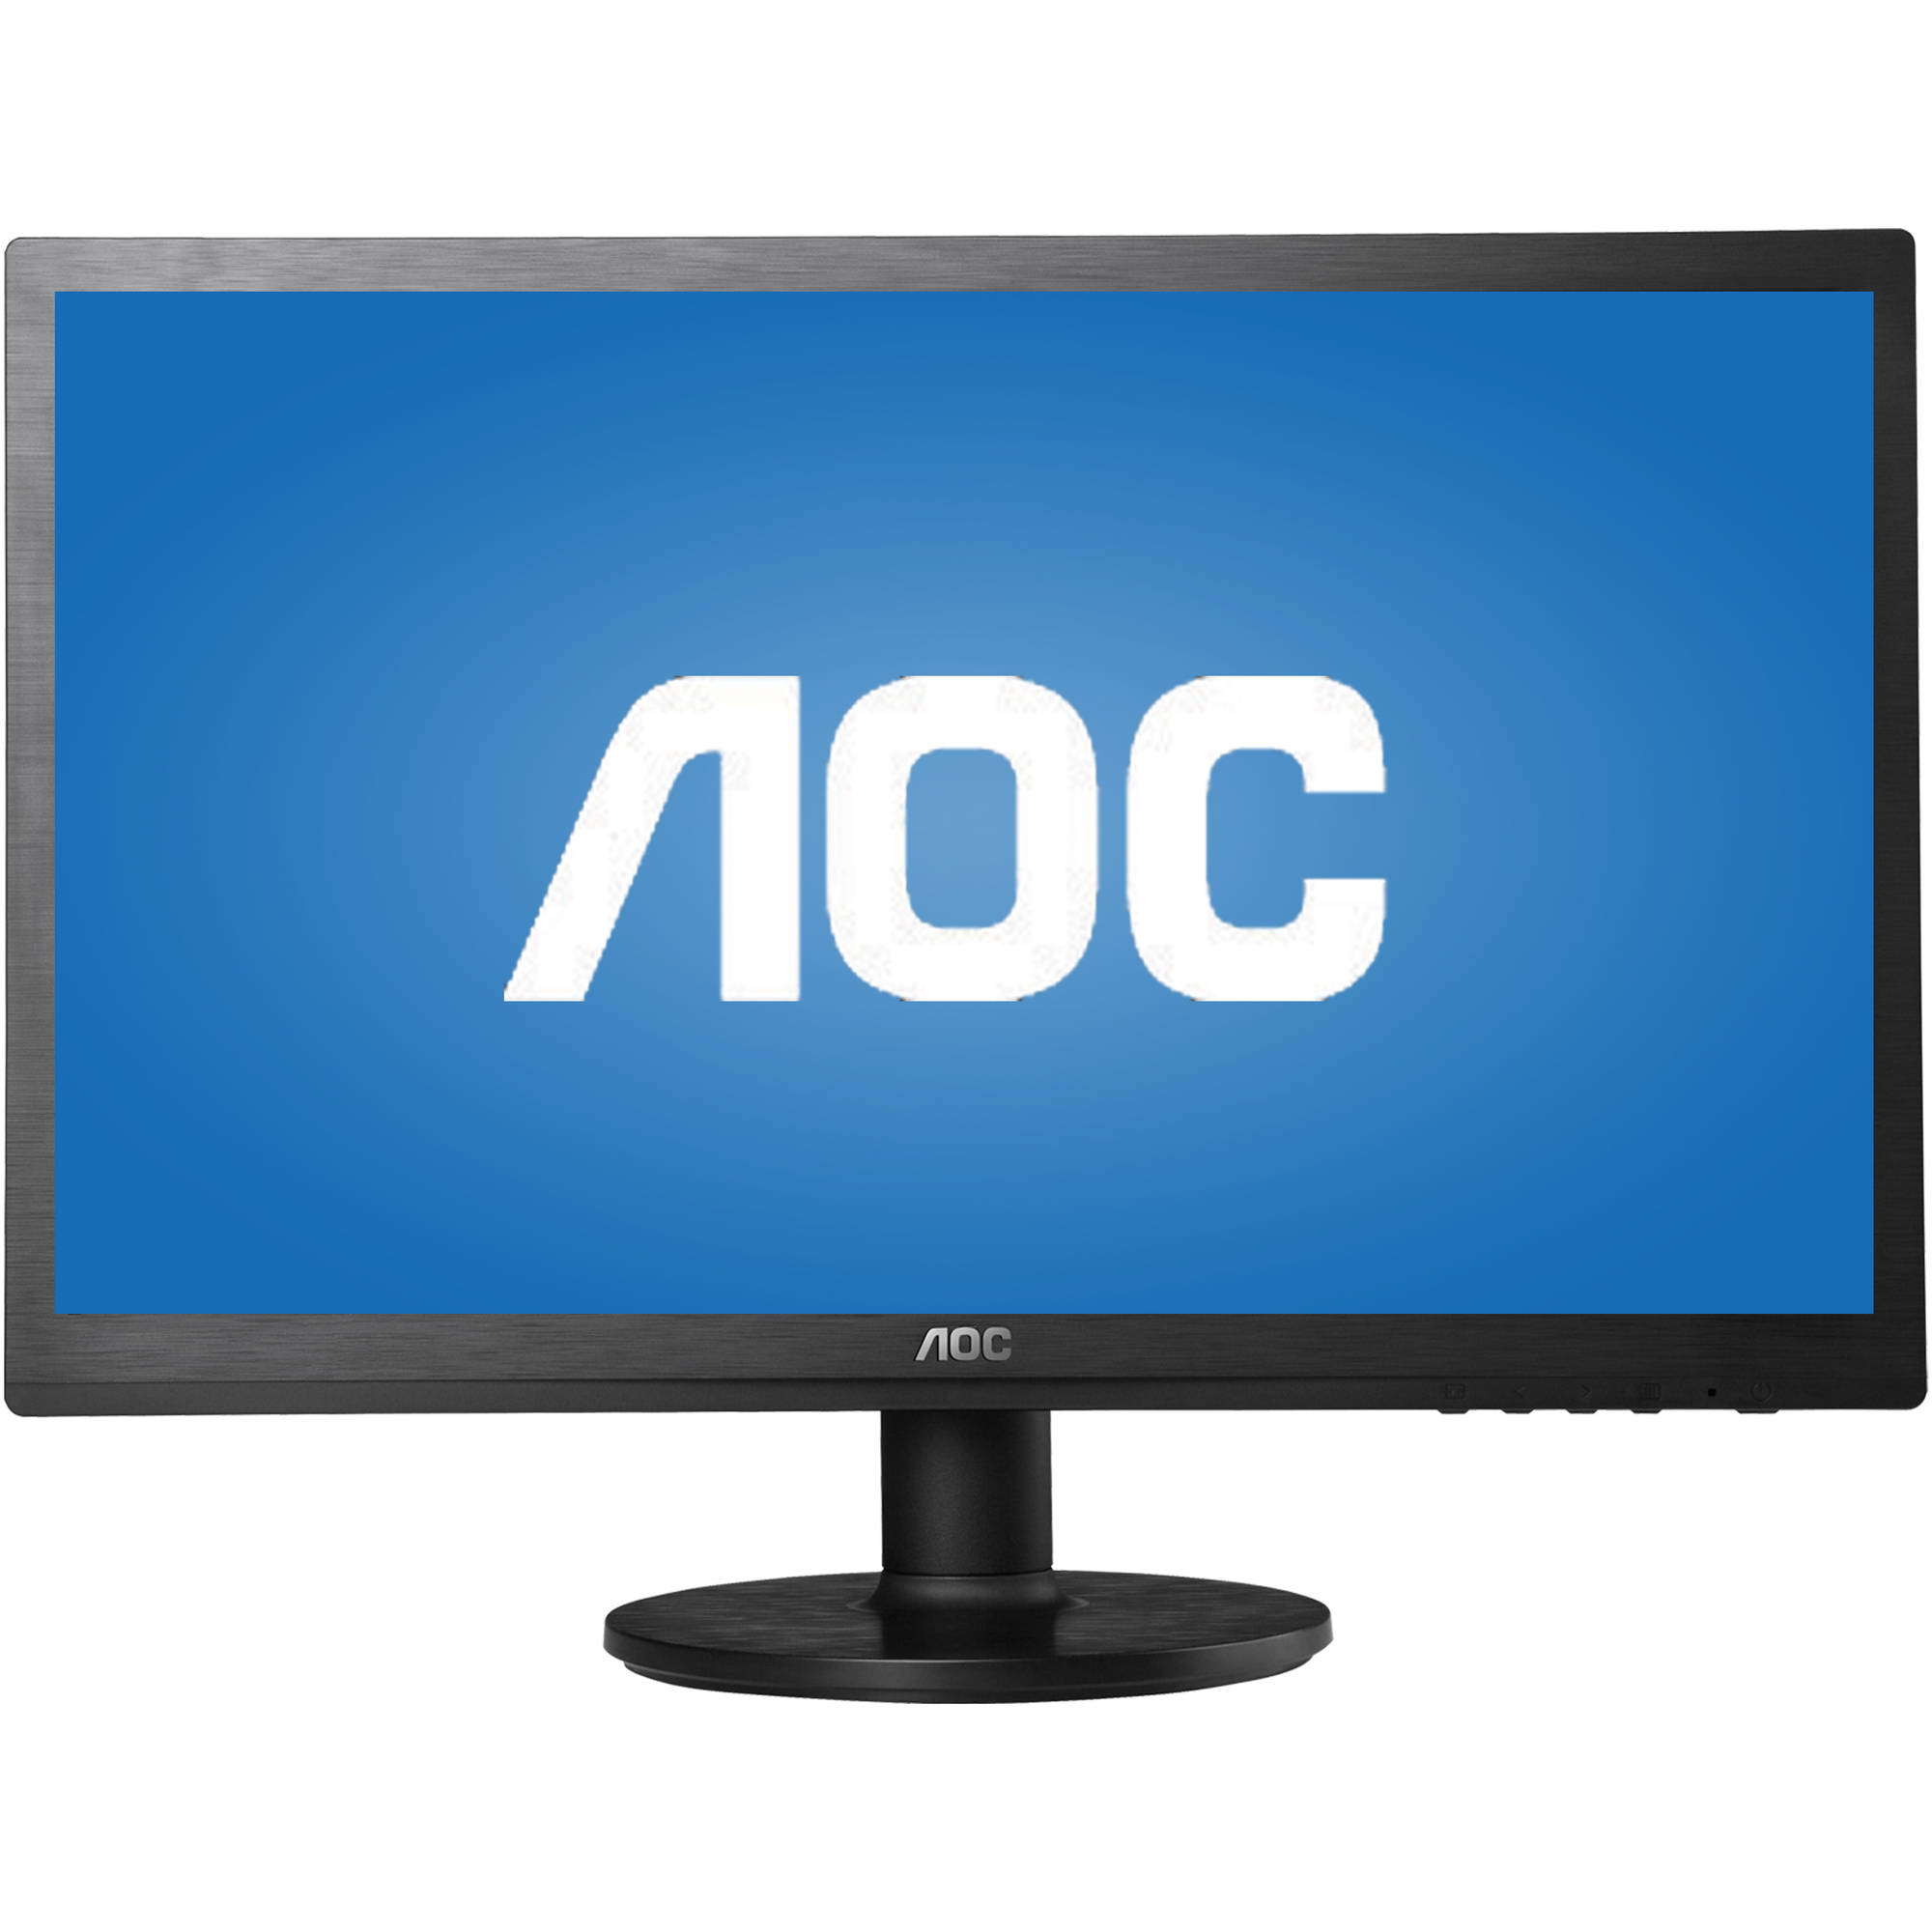 "AOC Monitor 22"" Class Full HD 1920x1080 VGA DVI-D Built-in 2Wx2 Speakers E2260SWDA"